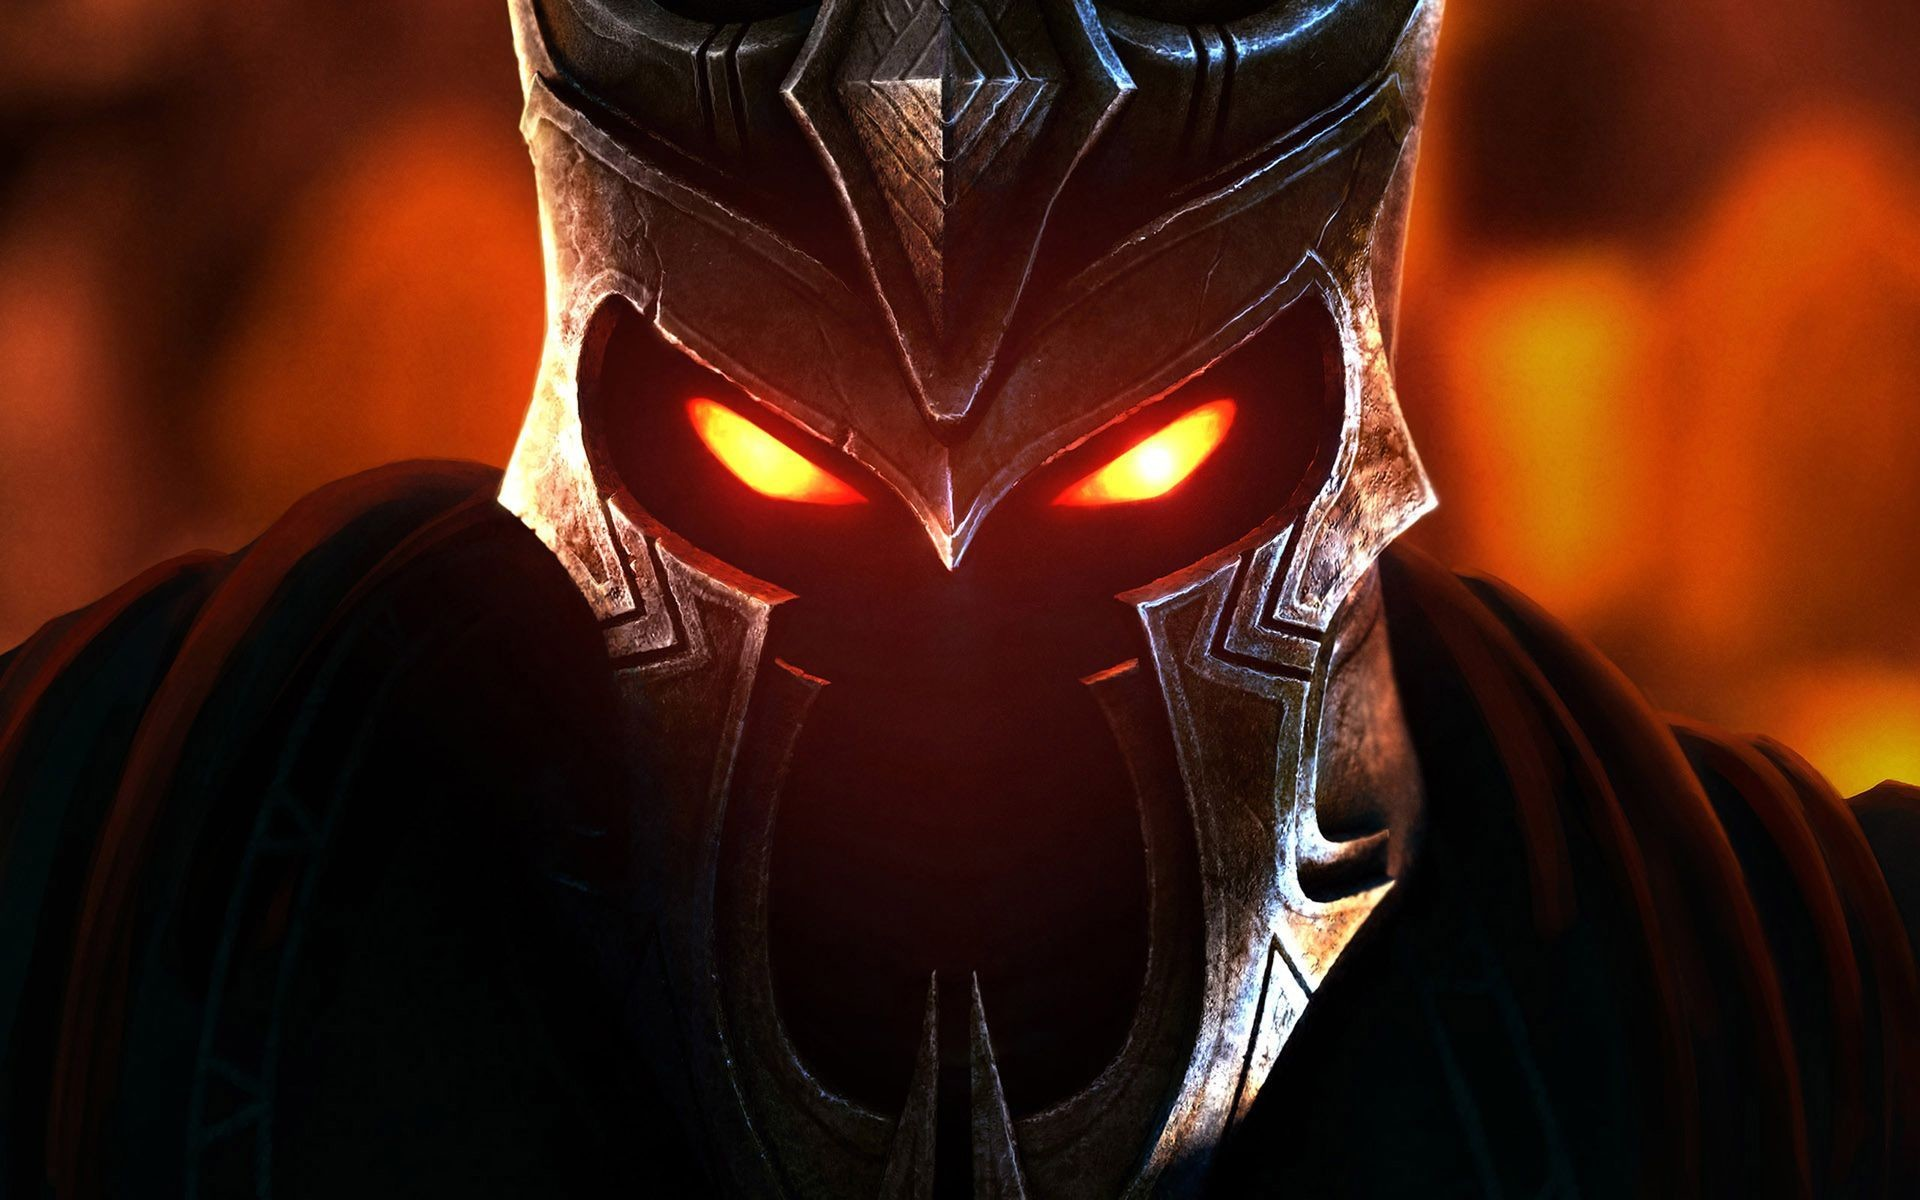 GAMING WALLPAPERS: Game Wallpapers Free